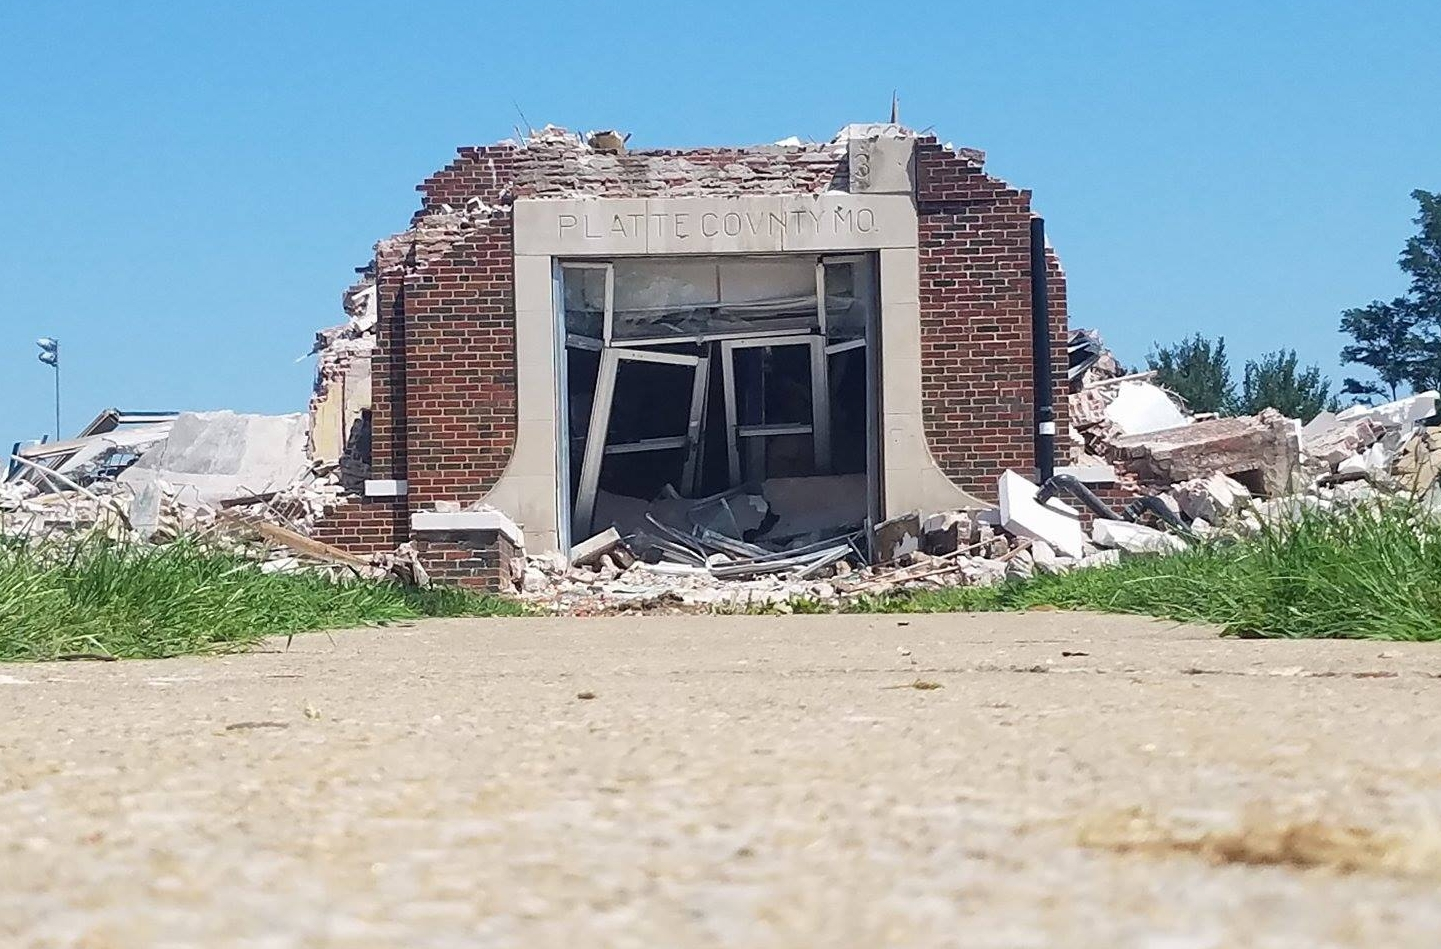 """BREANNA L. CHEADLE/Special to The Citizen Demolition of the 1930 section of the North Platte Junior High/High School campus began Monday, July 24 as crews took down most of the structure except for the main entrance, pictured here. Workers were waiting to remove the """"Platte County, MO"""" stone before finishing the demolition portion of the project."""